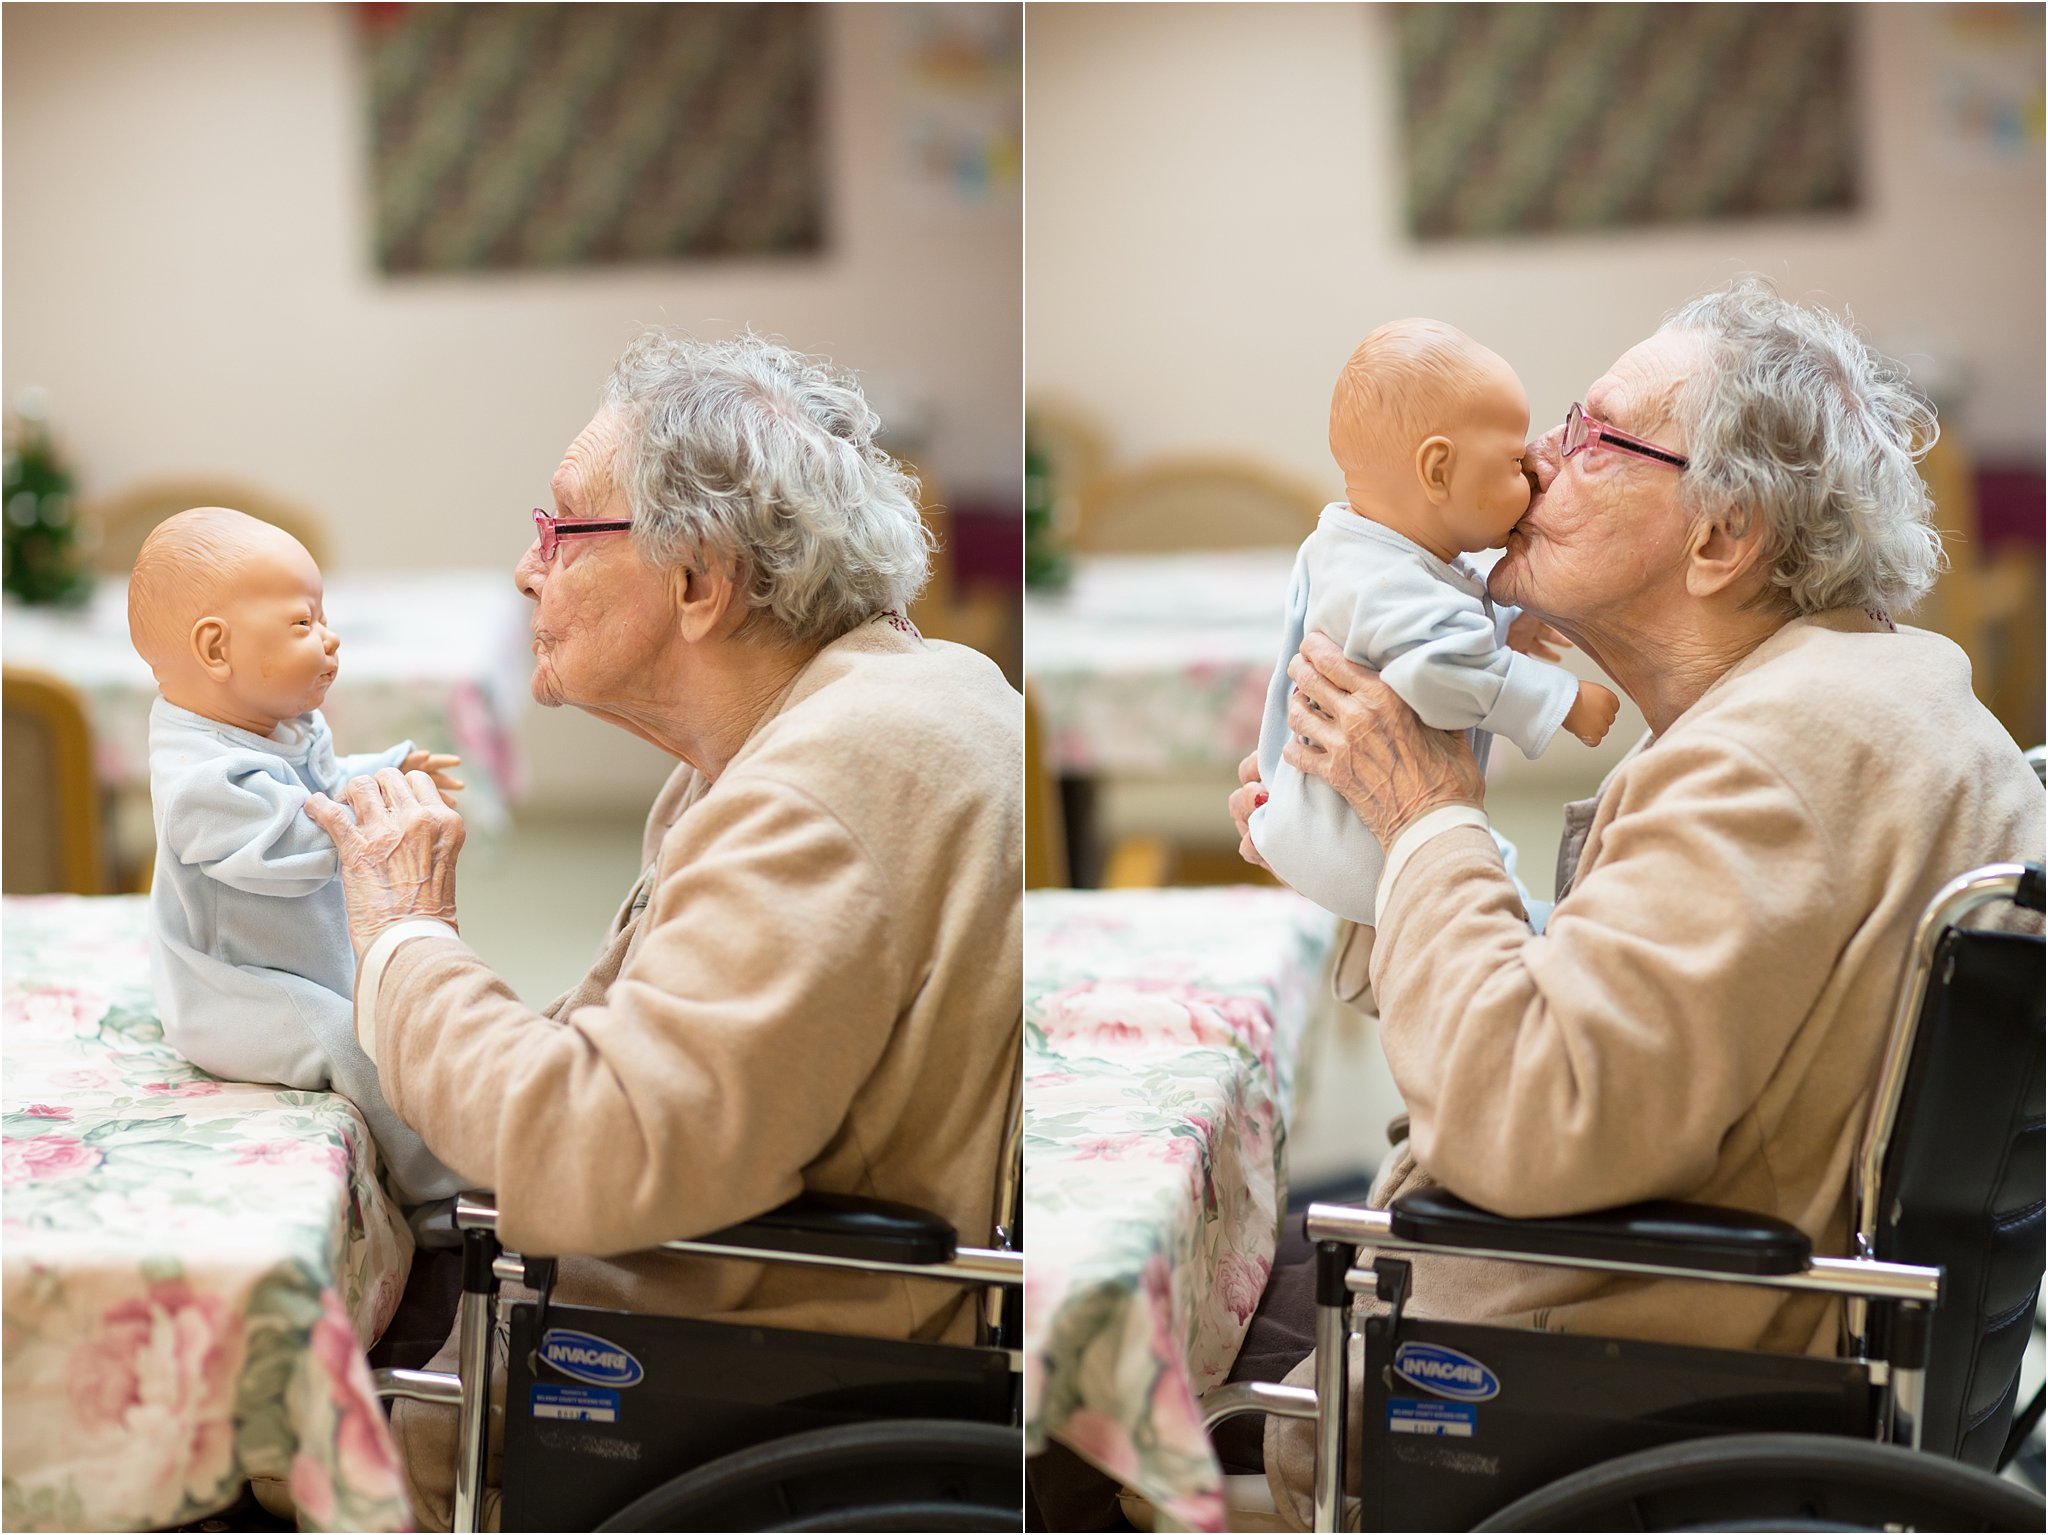 Elderly Woman Kissing Doll